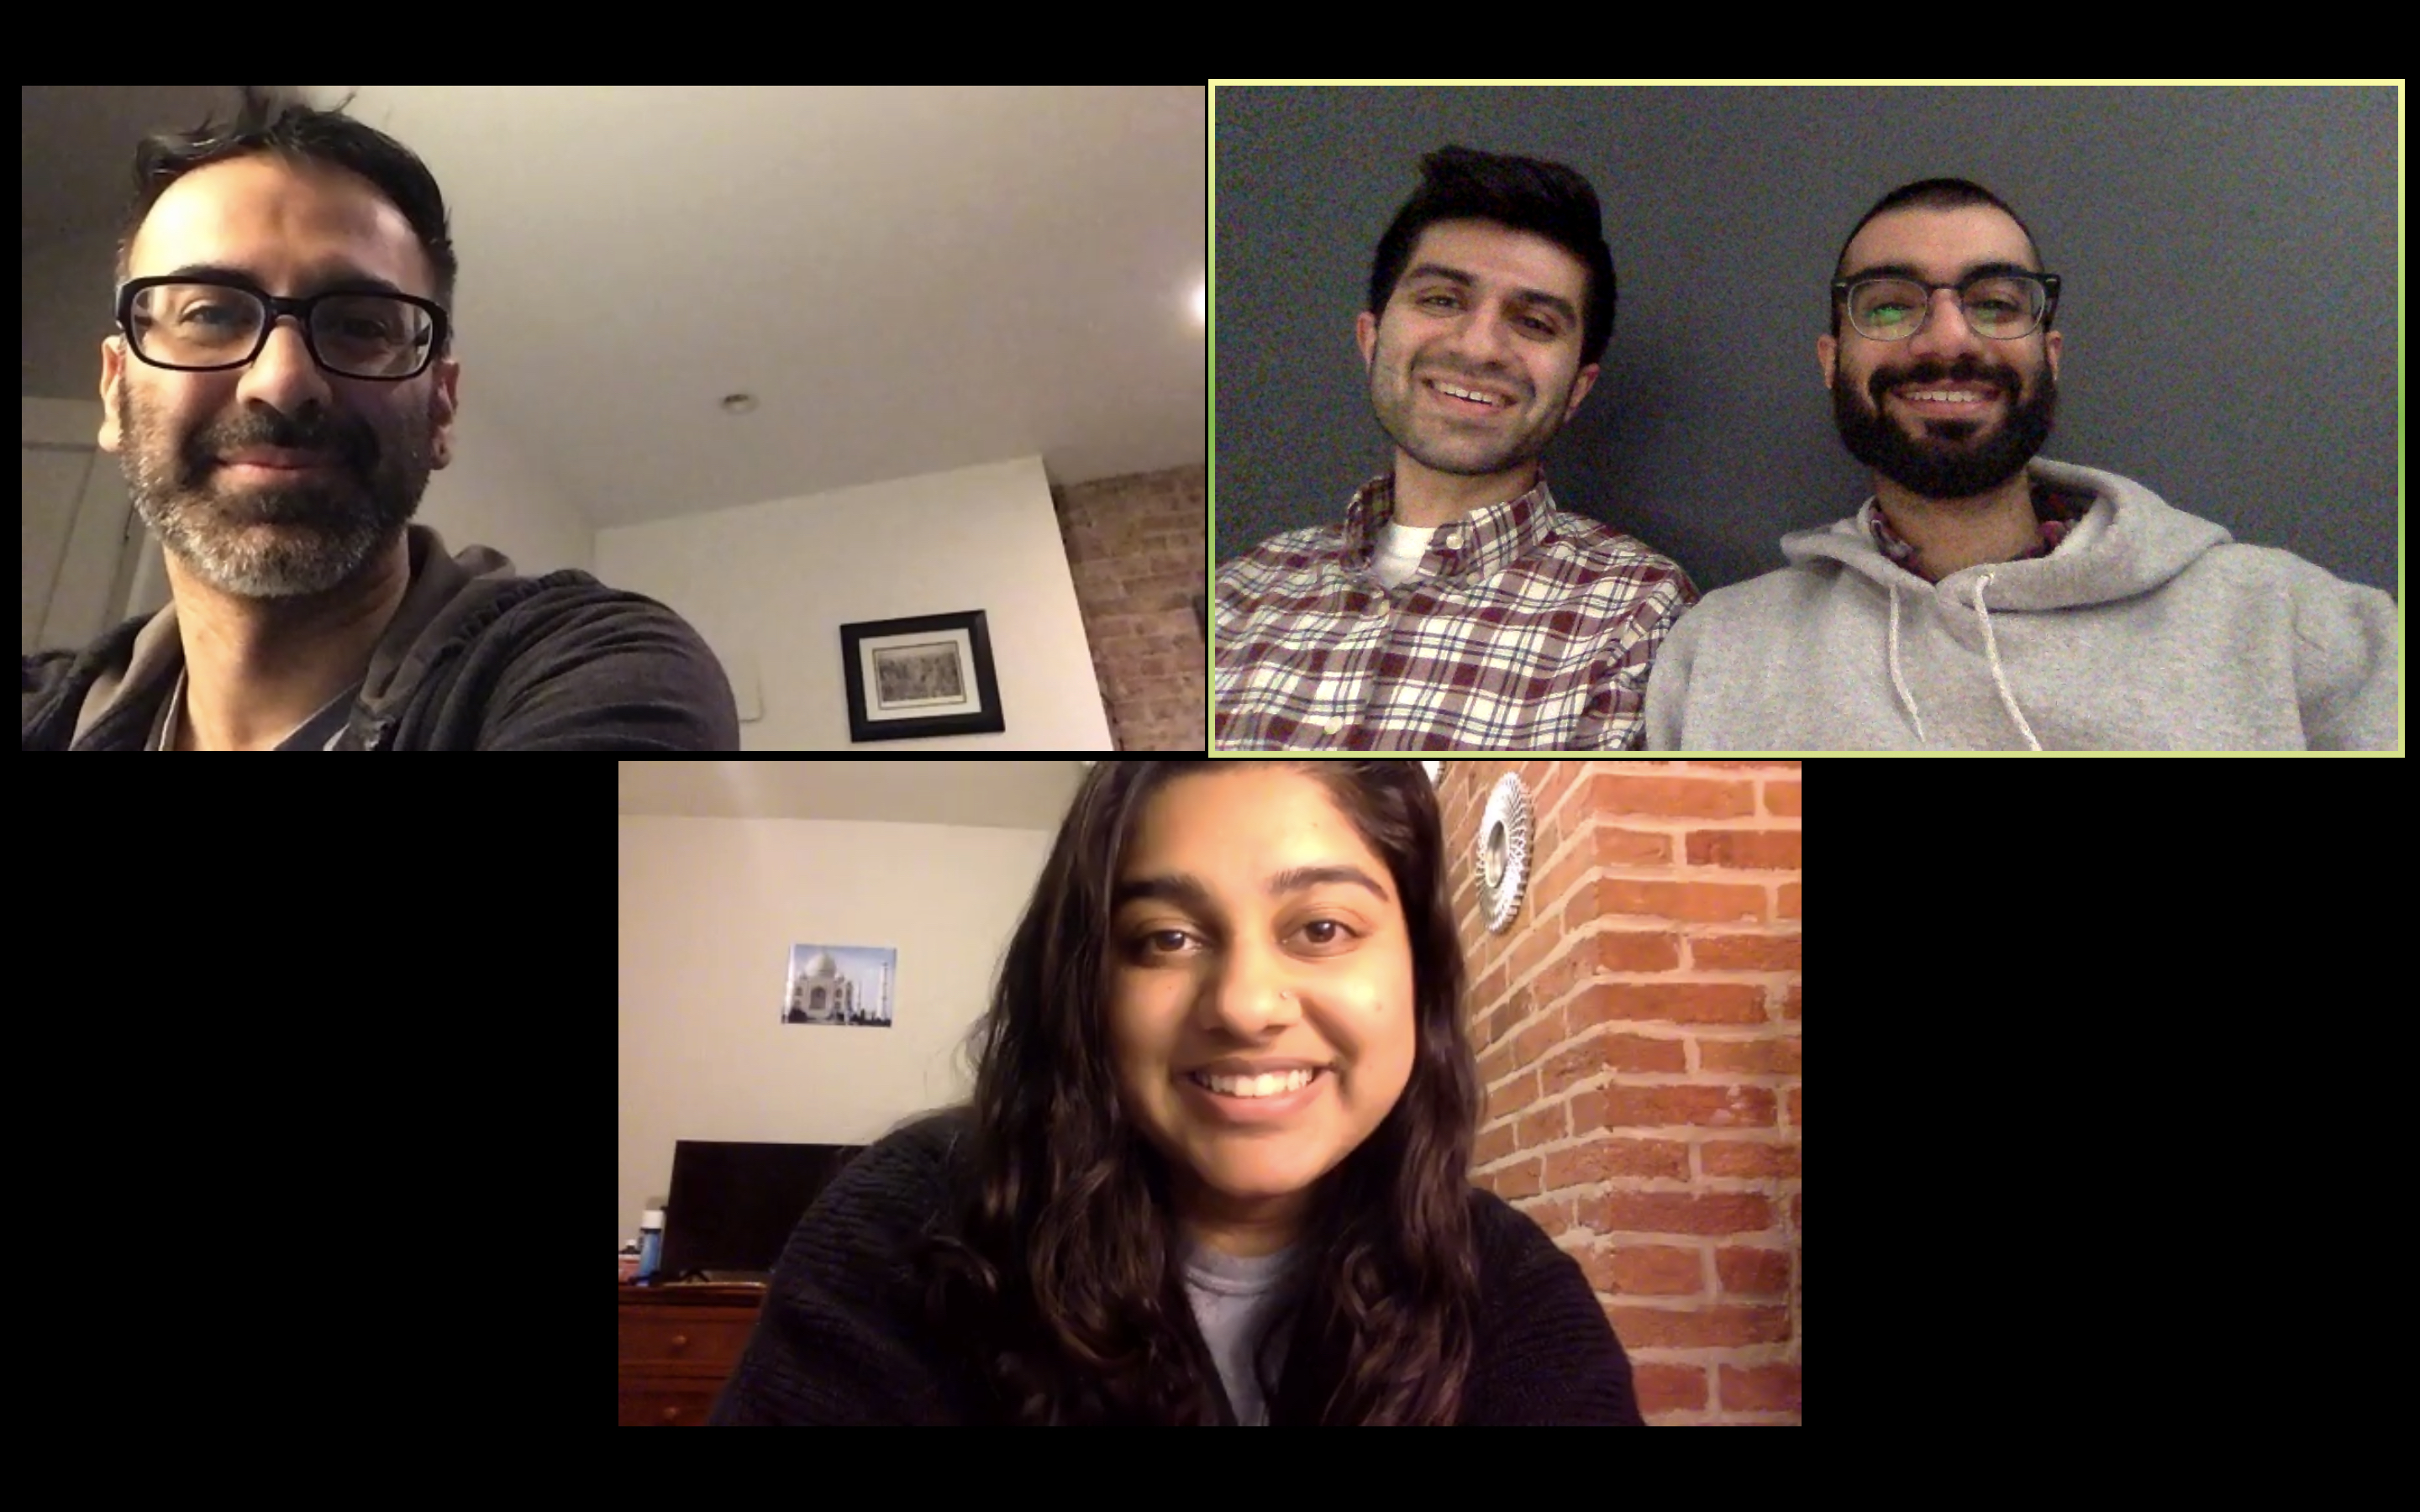 Aziz Sandhu (bottom), Sameer Laul (far right), Sahil Laul (center right) and Anupam Laul collaborated over Zoom video calls to design their product.